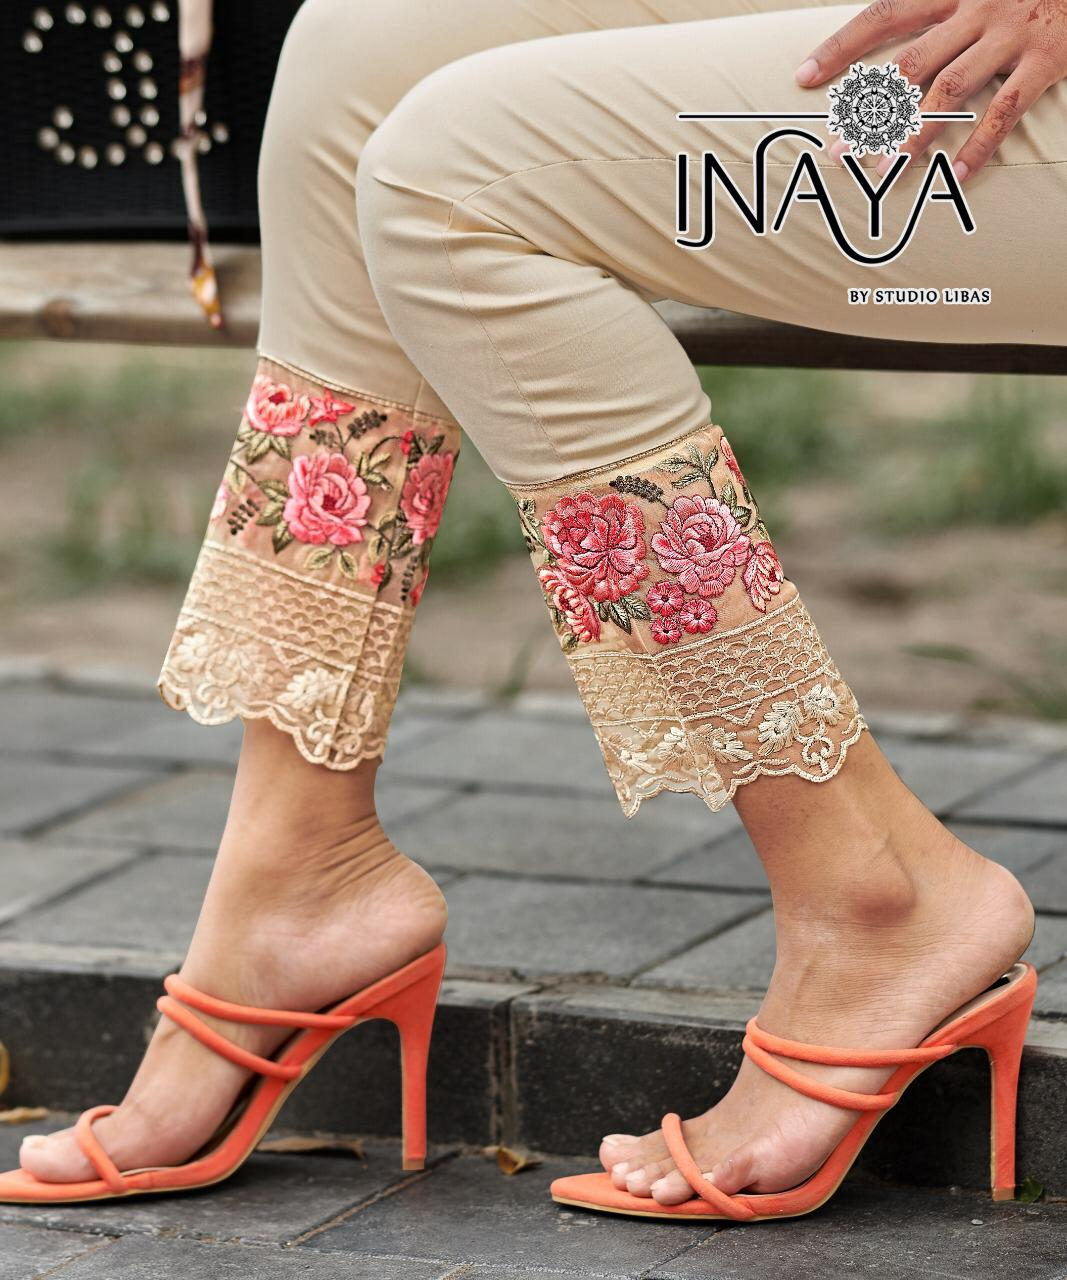 Inaya By Studio Libas Cigarettes 15 Stretchable Cotton Cigarette Pants Collection